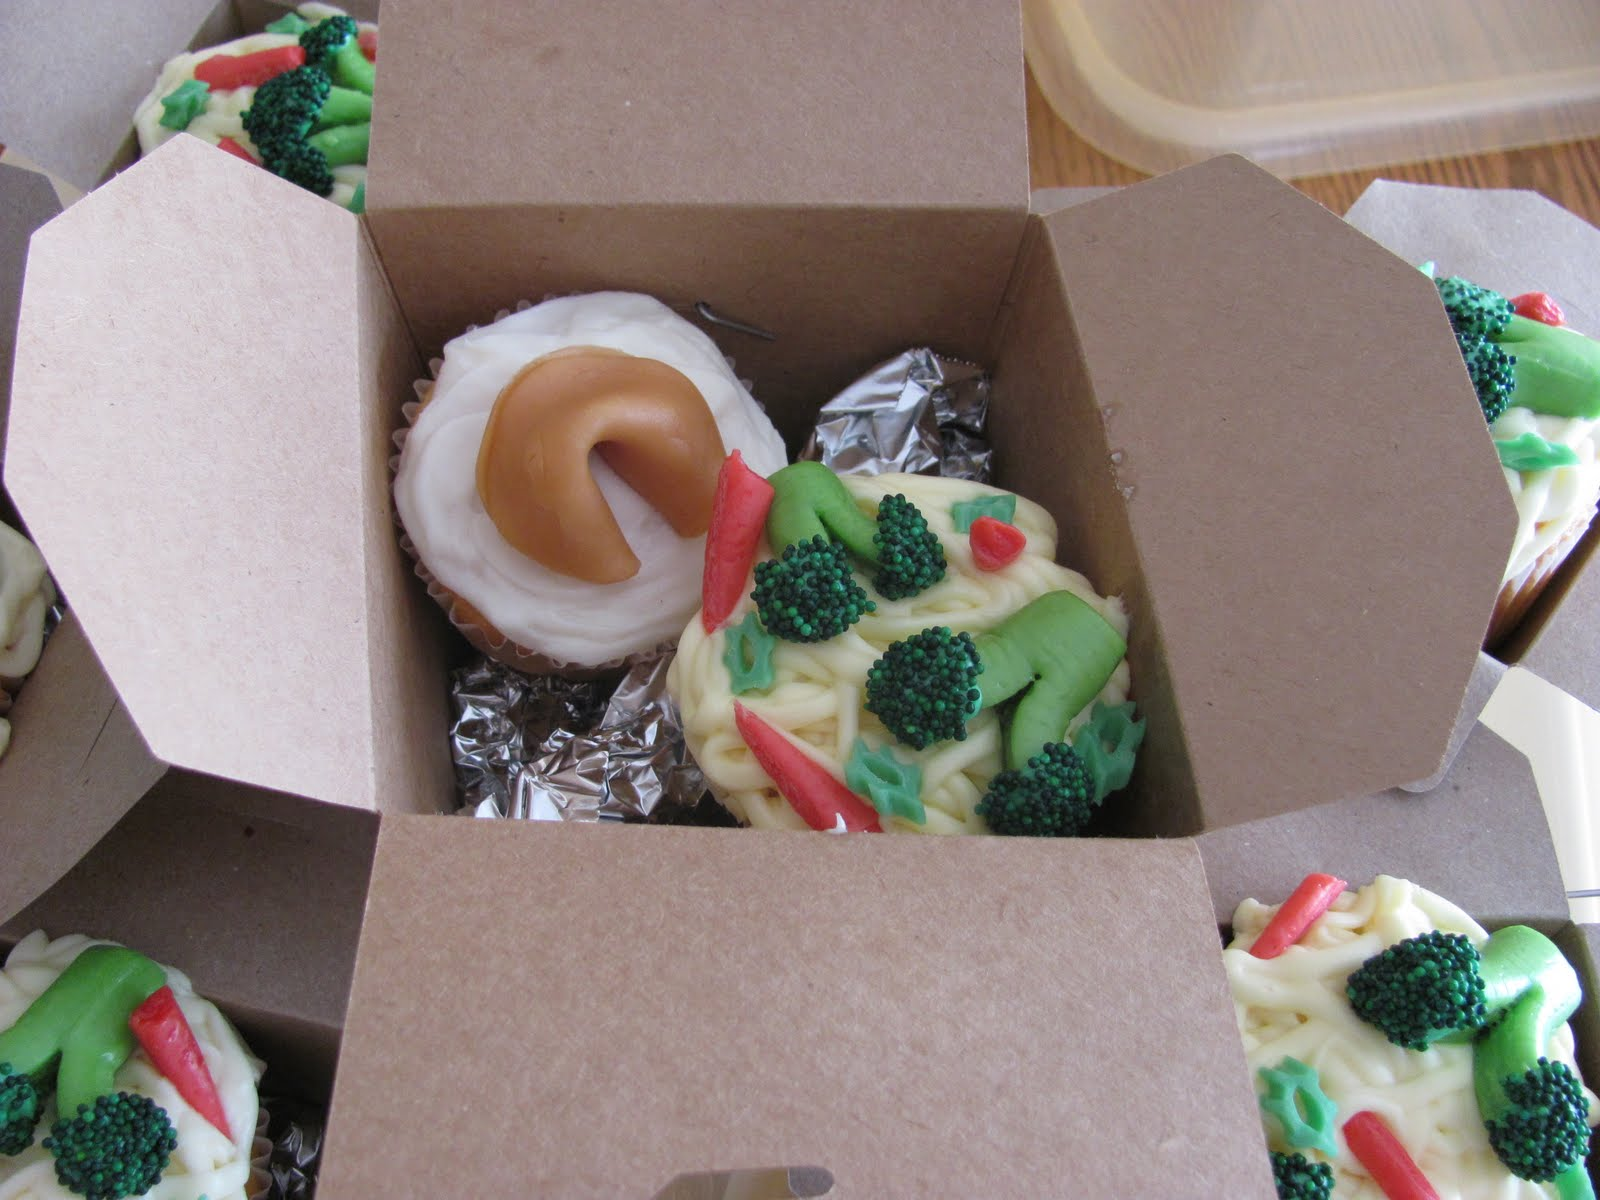 placed the cupcakes in brown Take-Out boxes, for a little ...